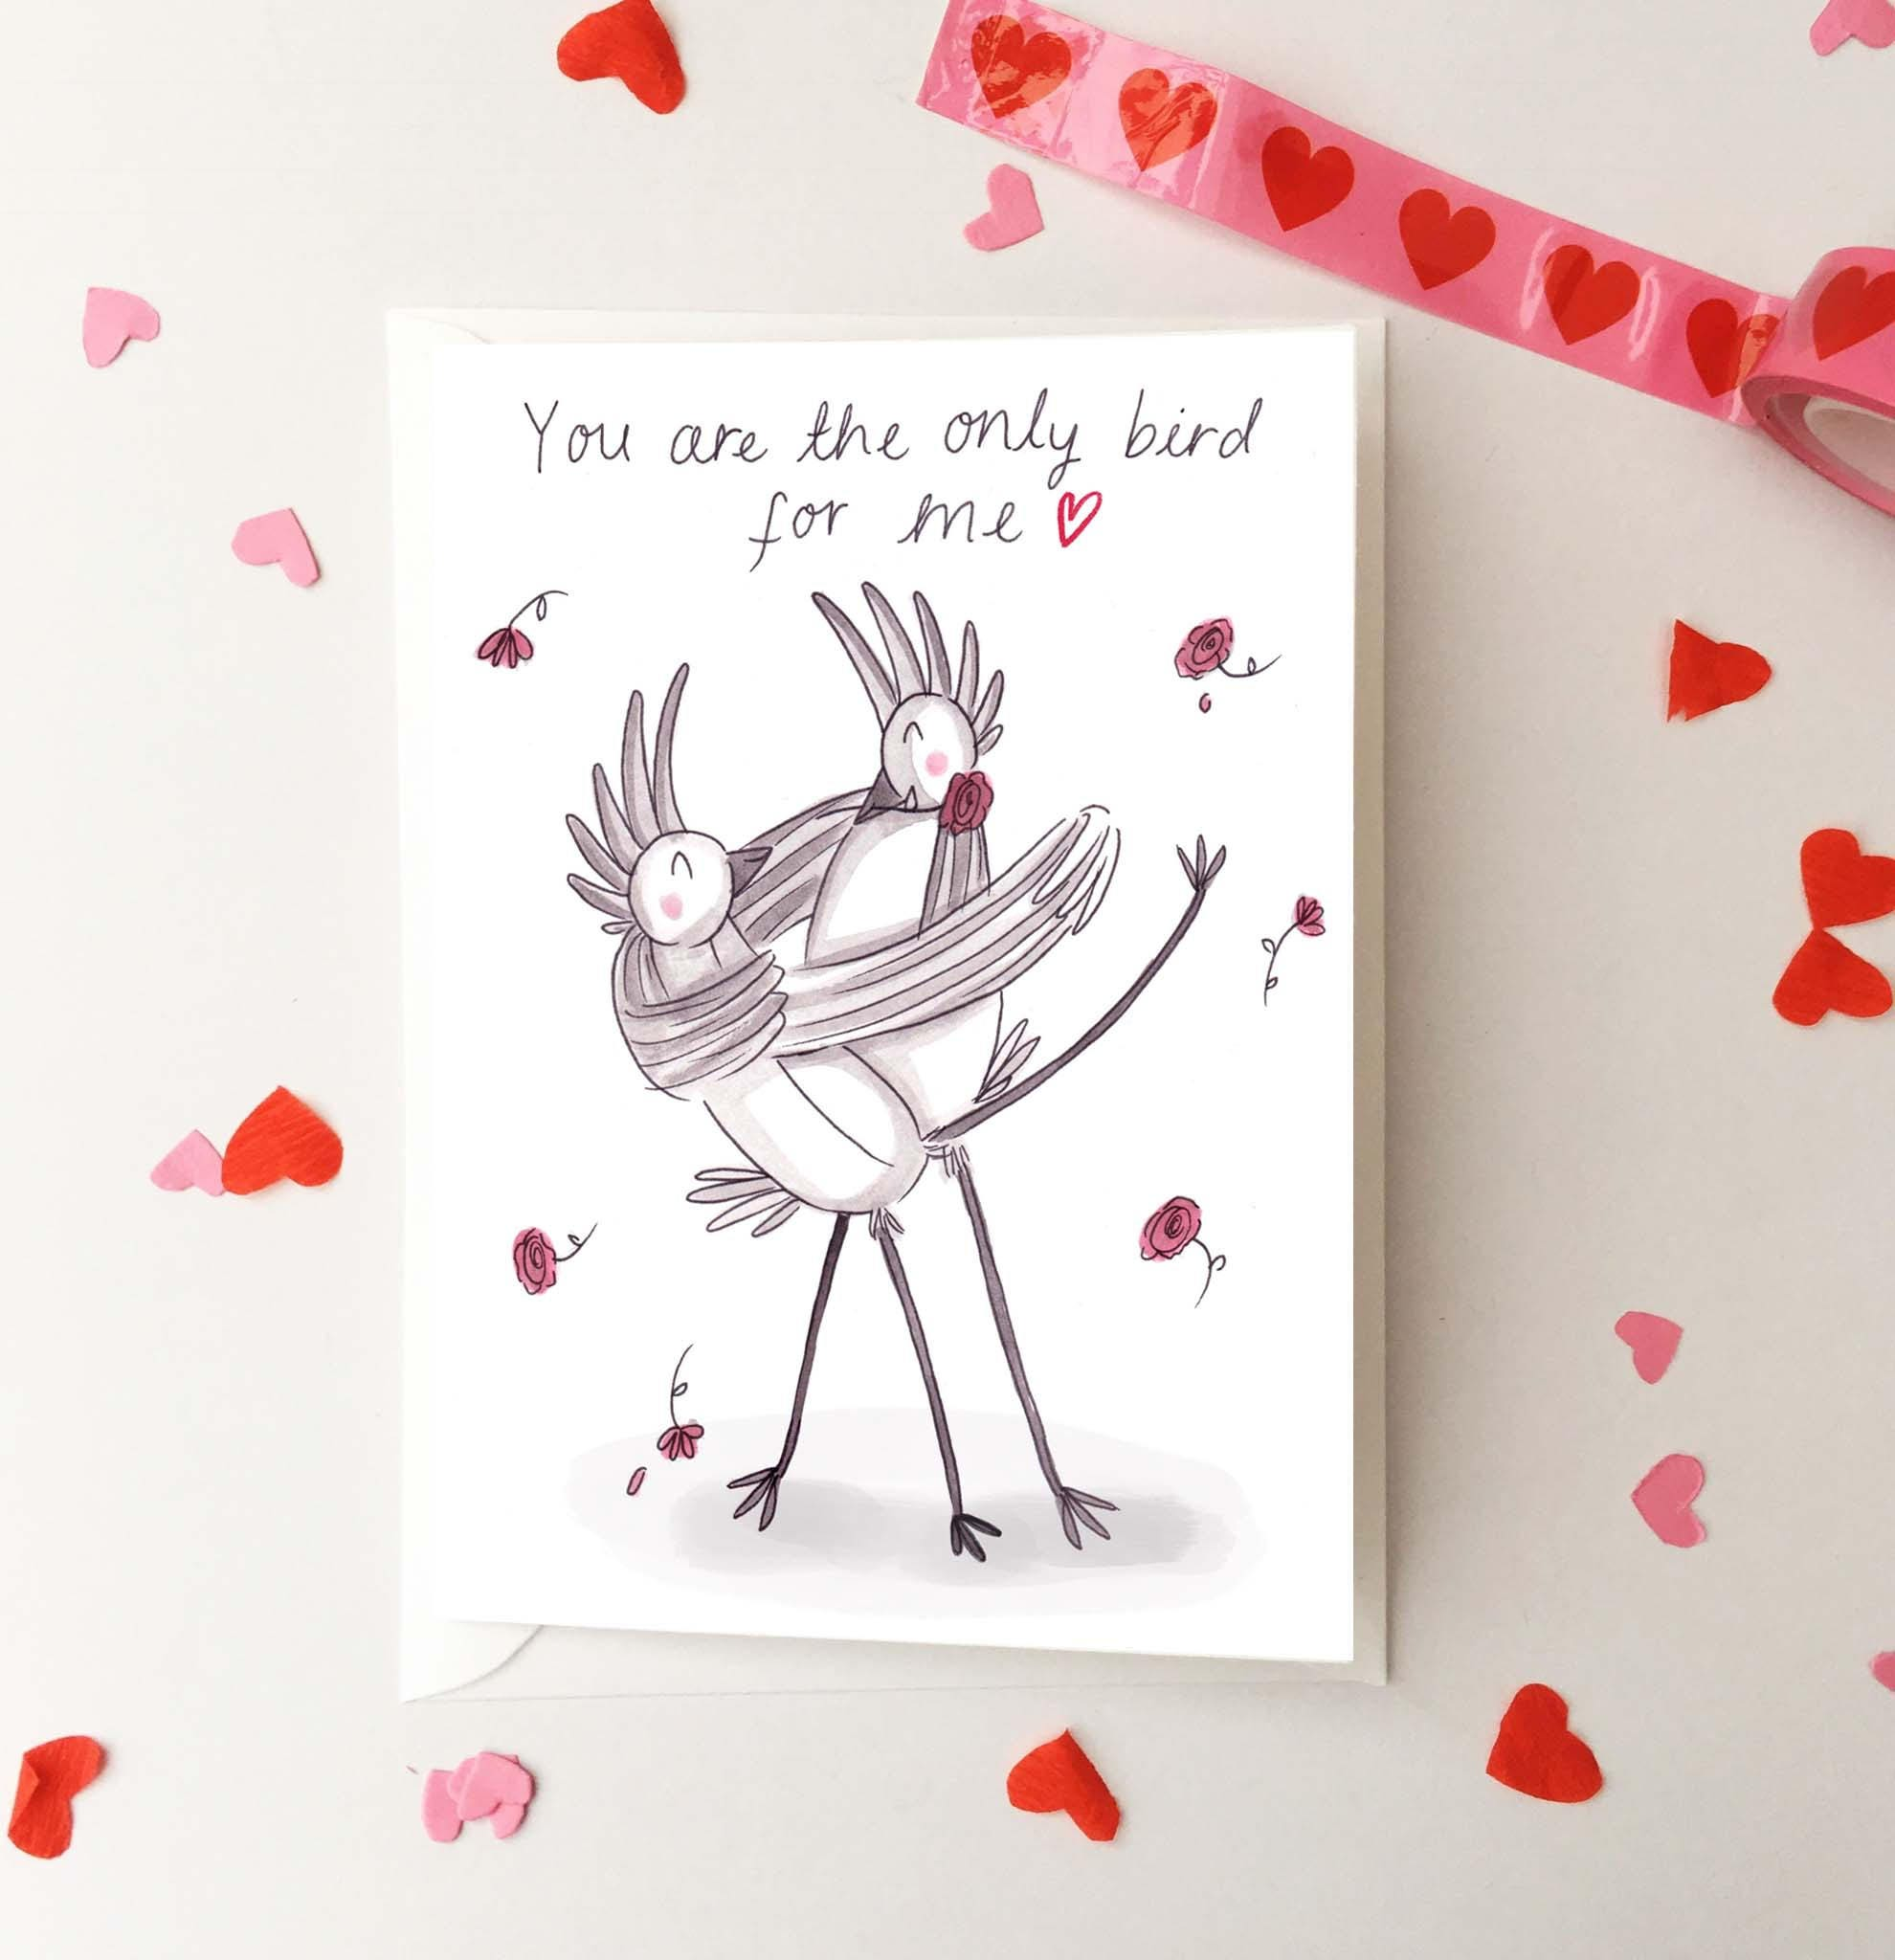 Funny bird valentines day card youre the only bird zoom kristyandbryce Gallery